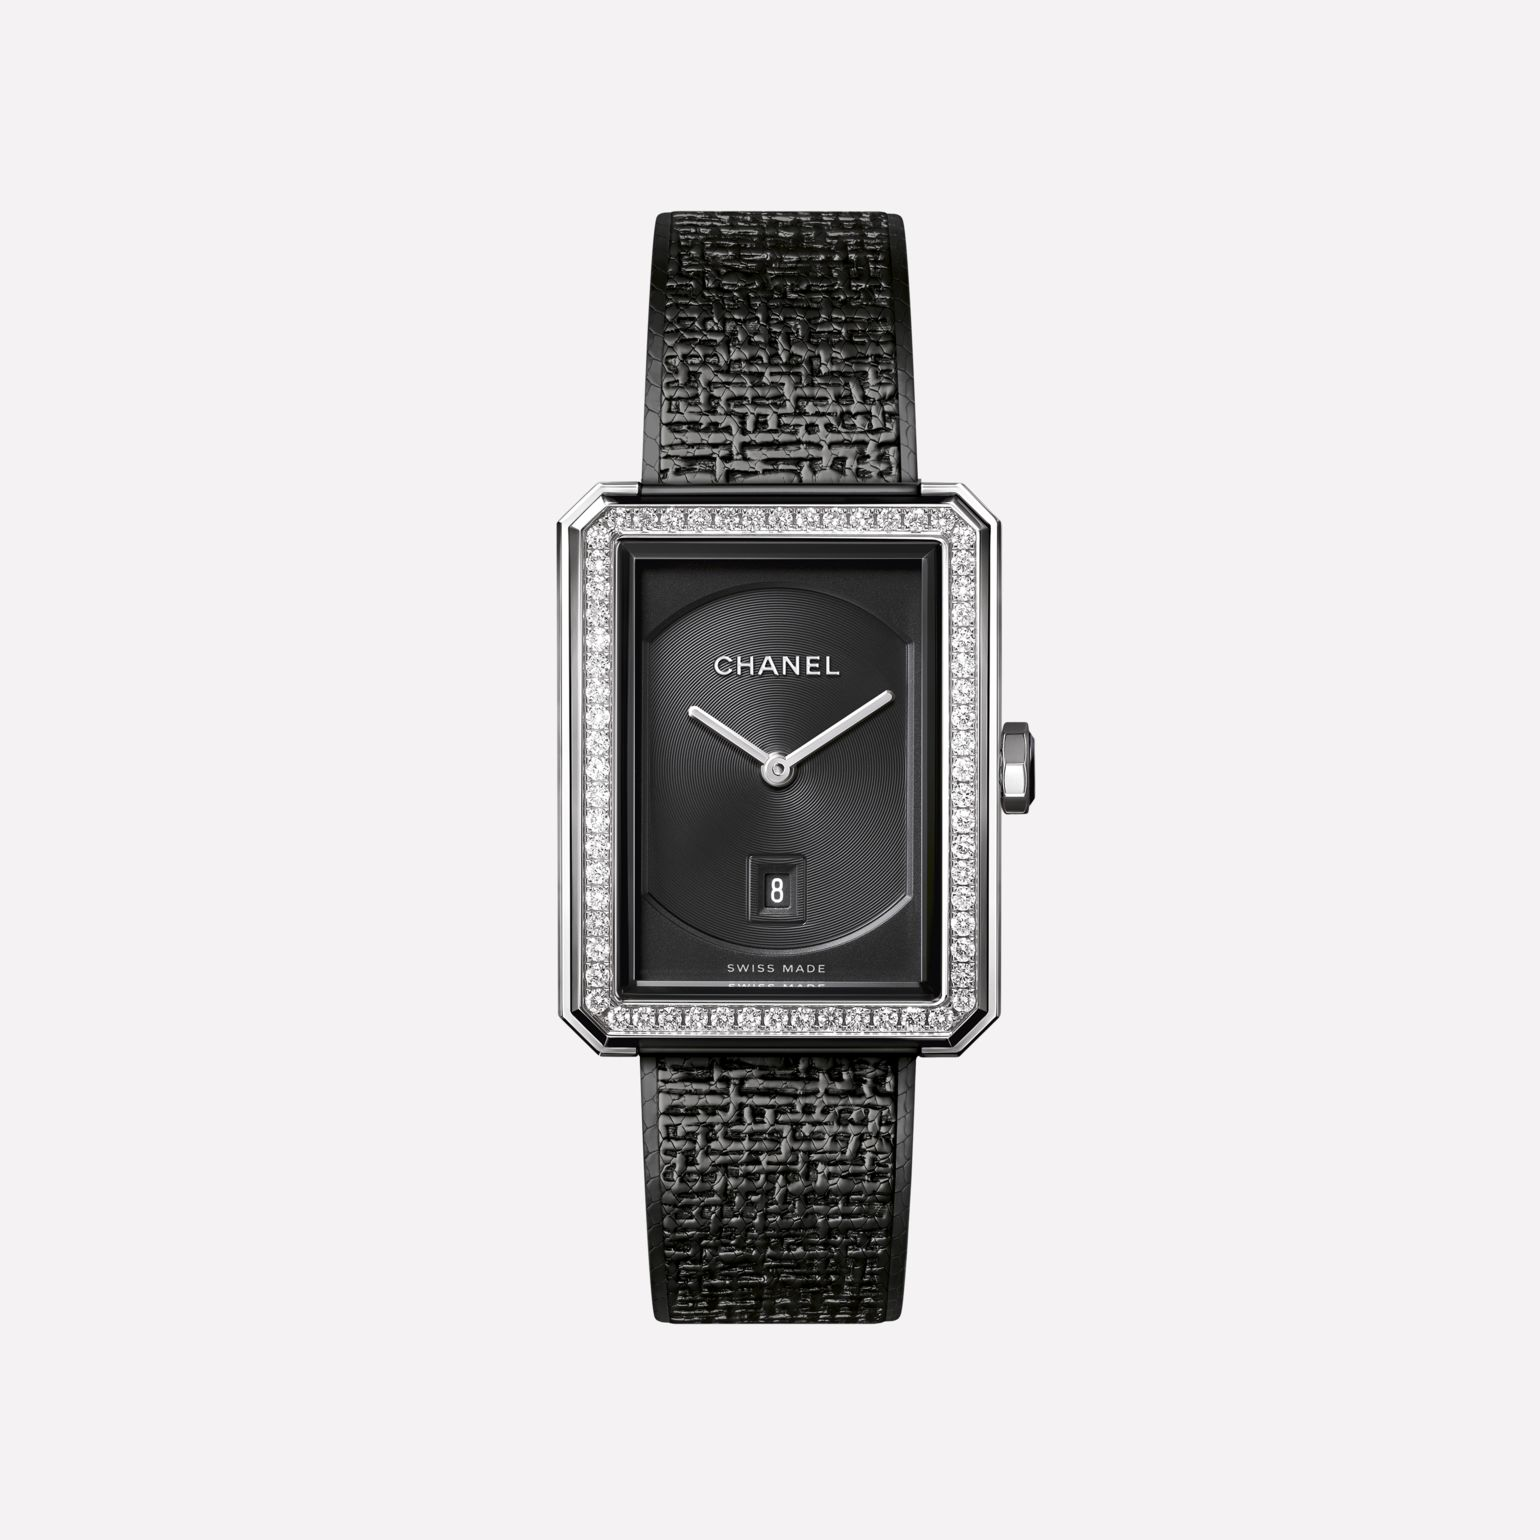 Montre BOY·FRIEND TWEED Moyen modèle, acier serti de diamants